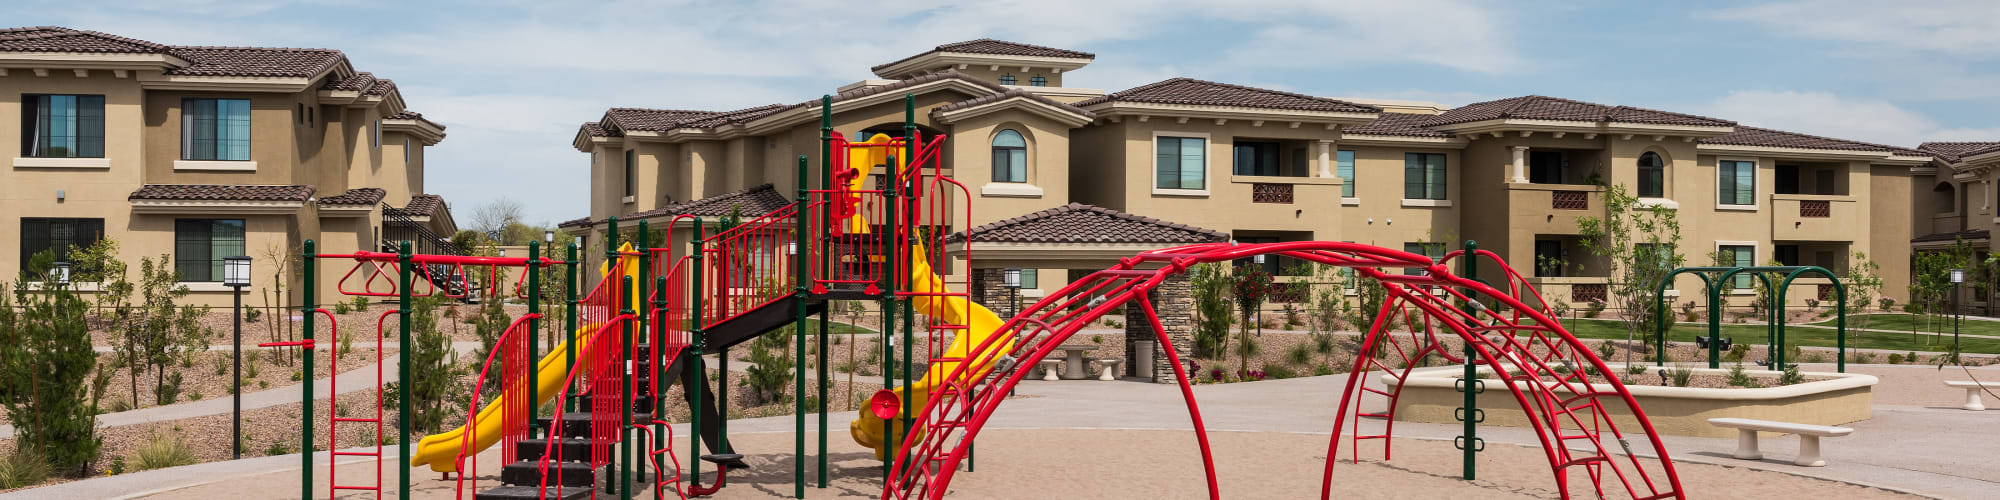 Apply to live at San Valencia in Chandler, Arizona